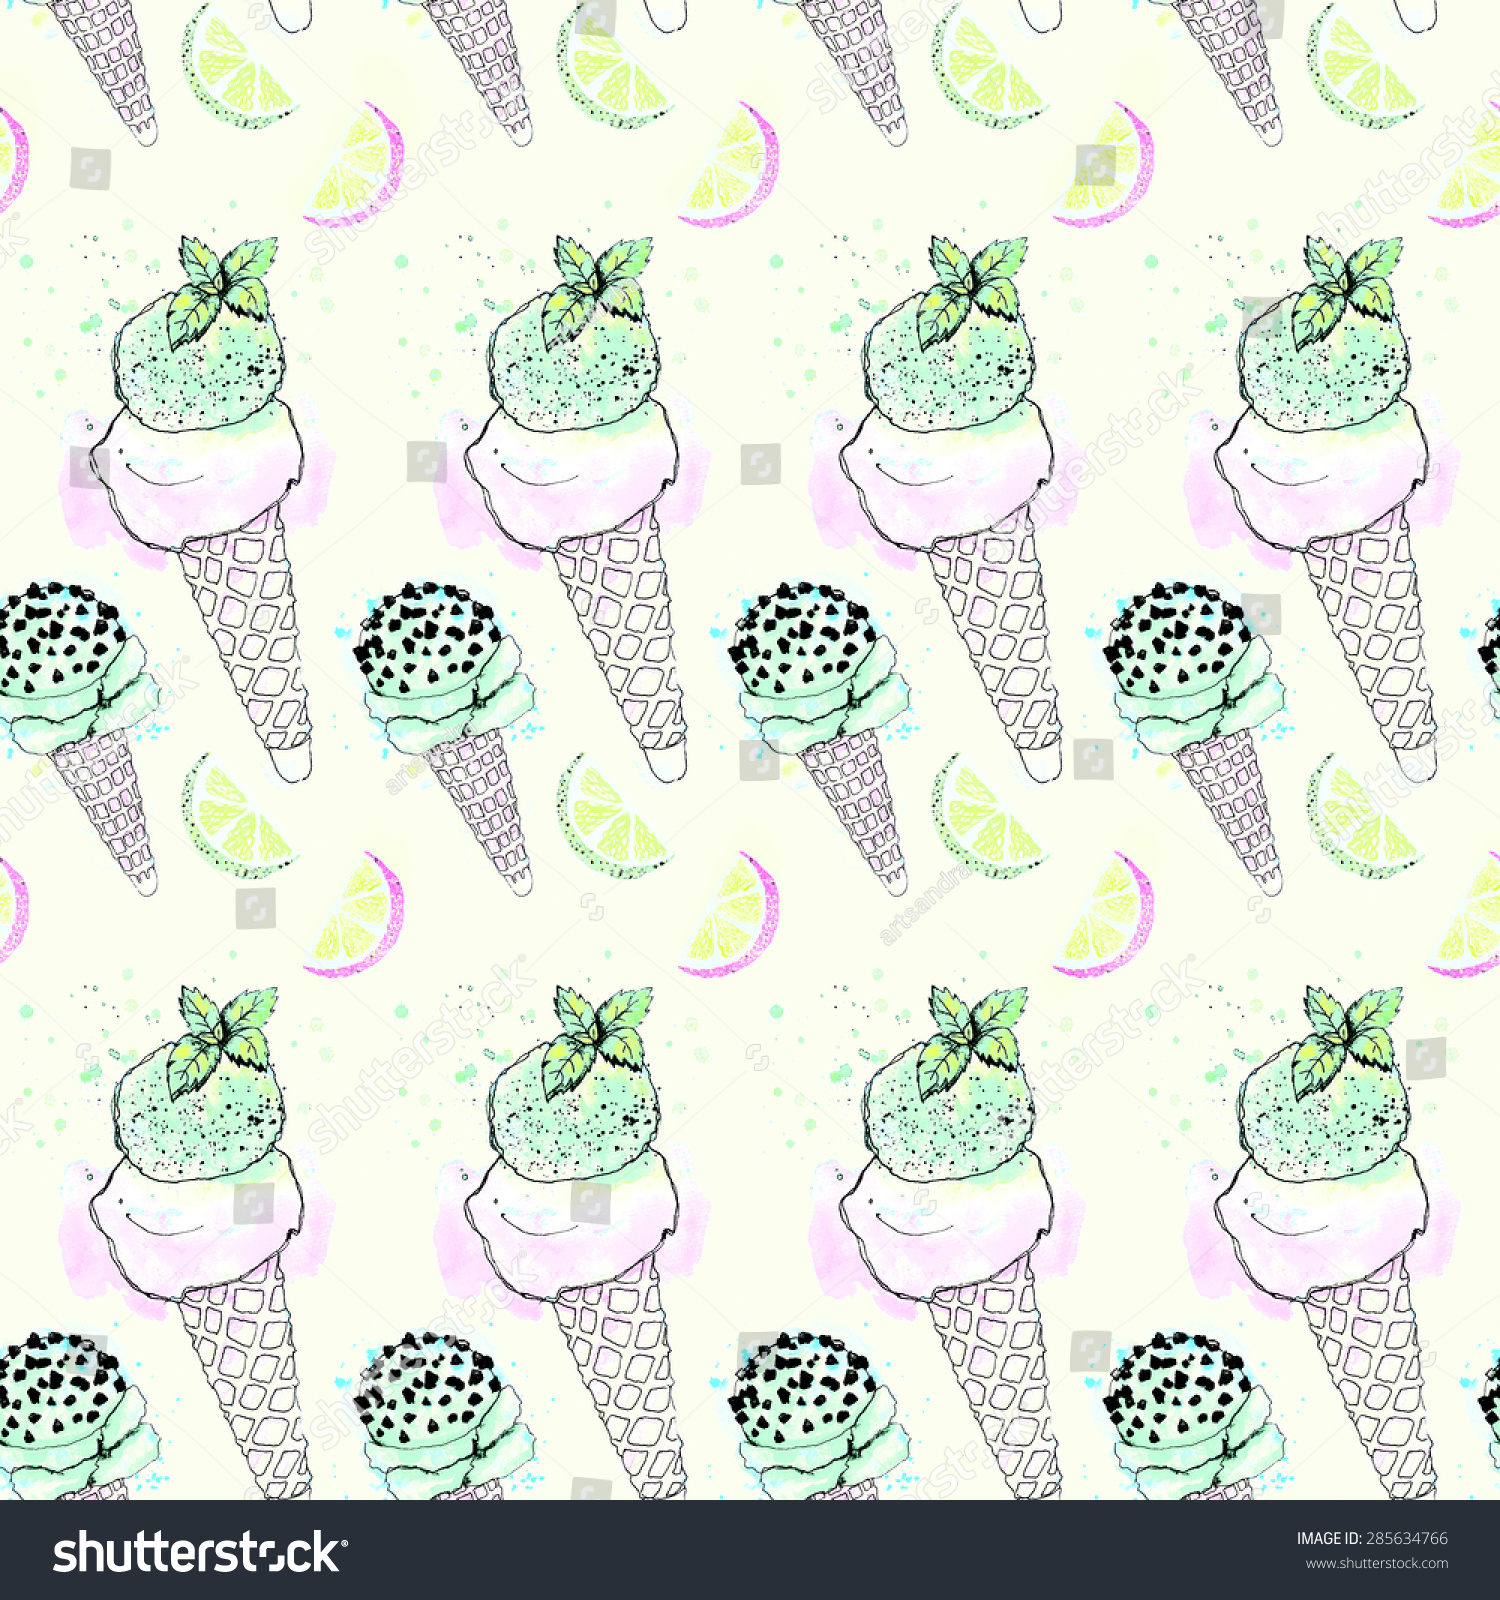 Seamless Pattern With Hand Drawn Watercolor Ice Cream: Watercolor Ice Cream Cone Seamless Pattern Stock